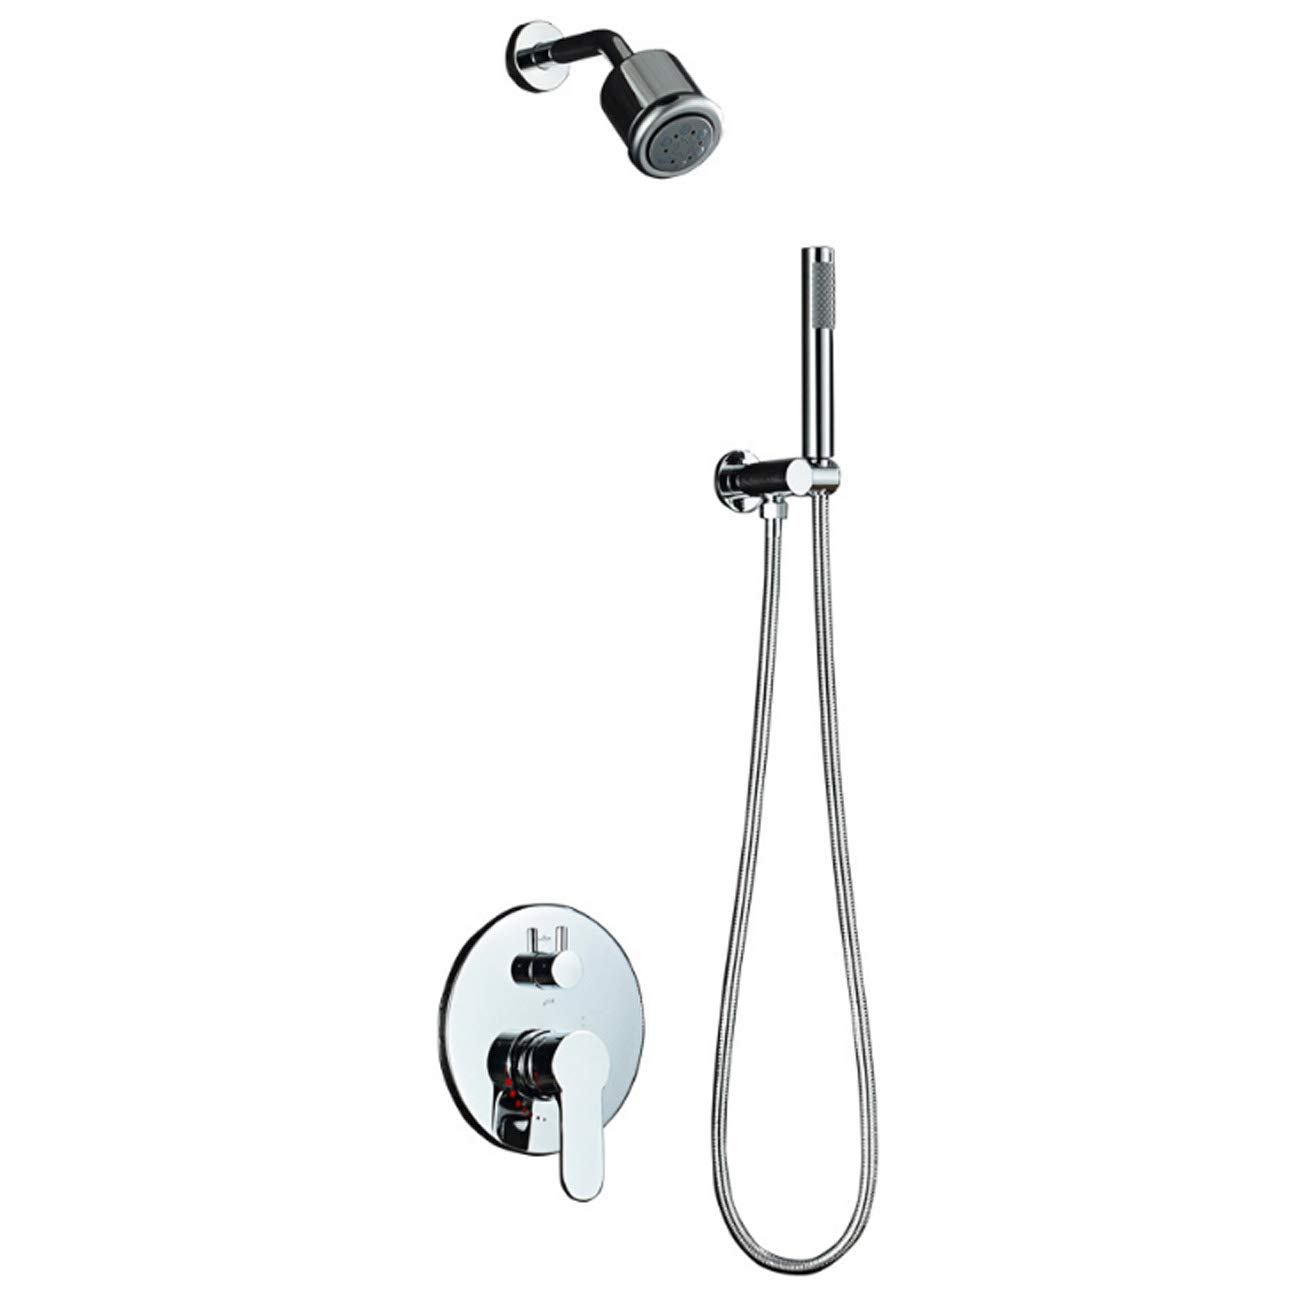 Ordinaryvalvebody Tochange Concealed Shower Mixer Set For Bath In-Wall Concealed Shower System With 3 Mode Small Nozzle + Handheld Shower For Bathroom Hotel Gym,Ordinaryvalvebody